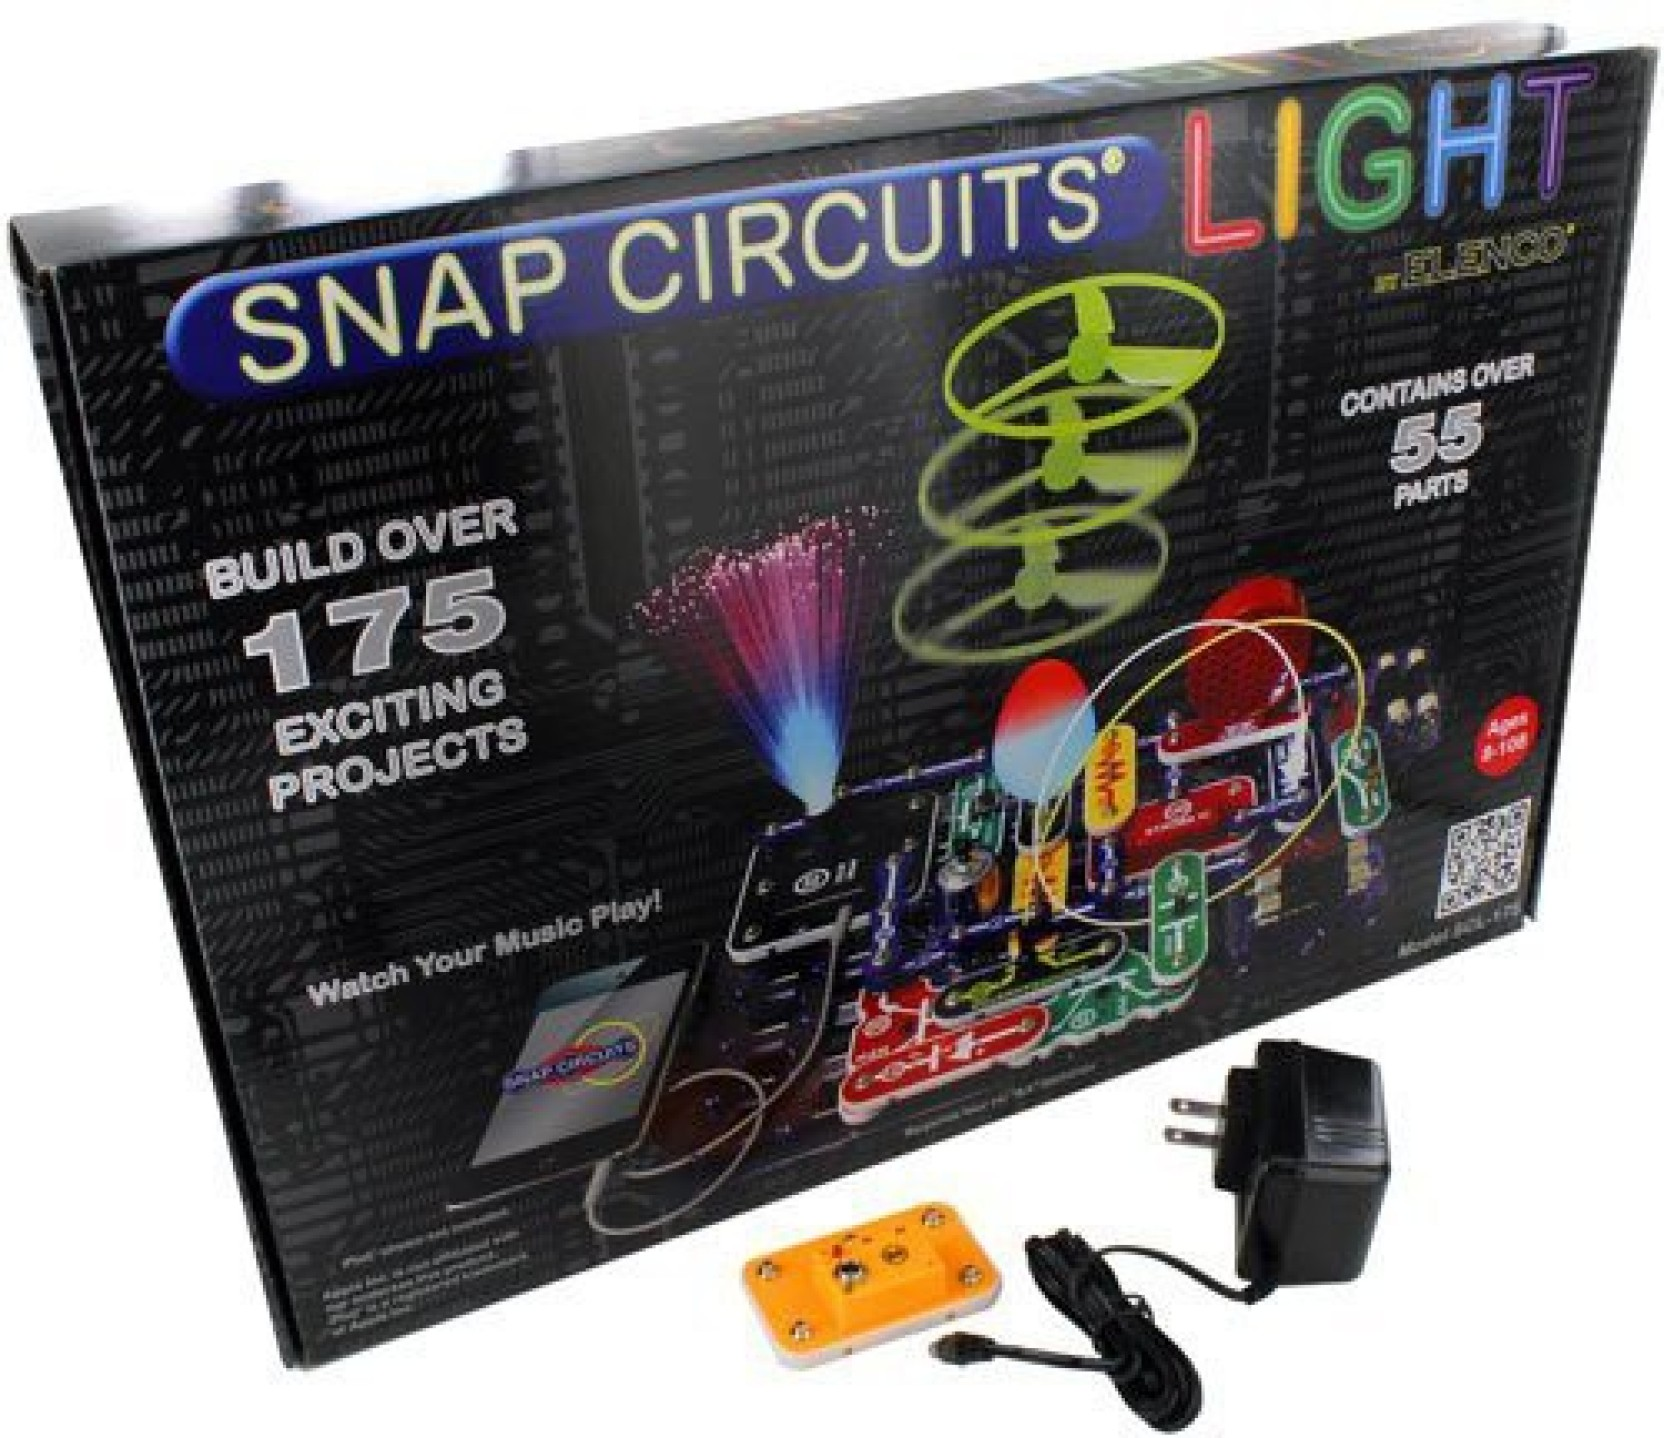 Snap Circuits Elenco Light Kit With Ac Adapter Set Price In Sound On Offer